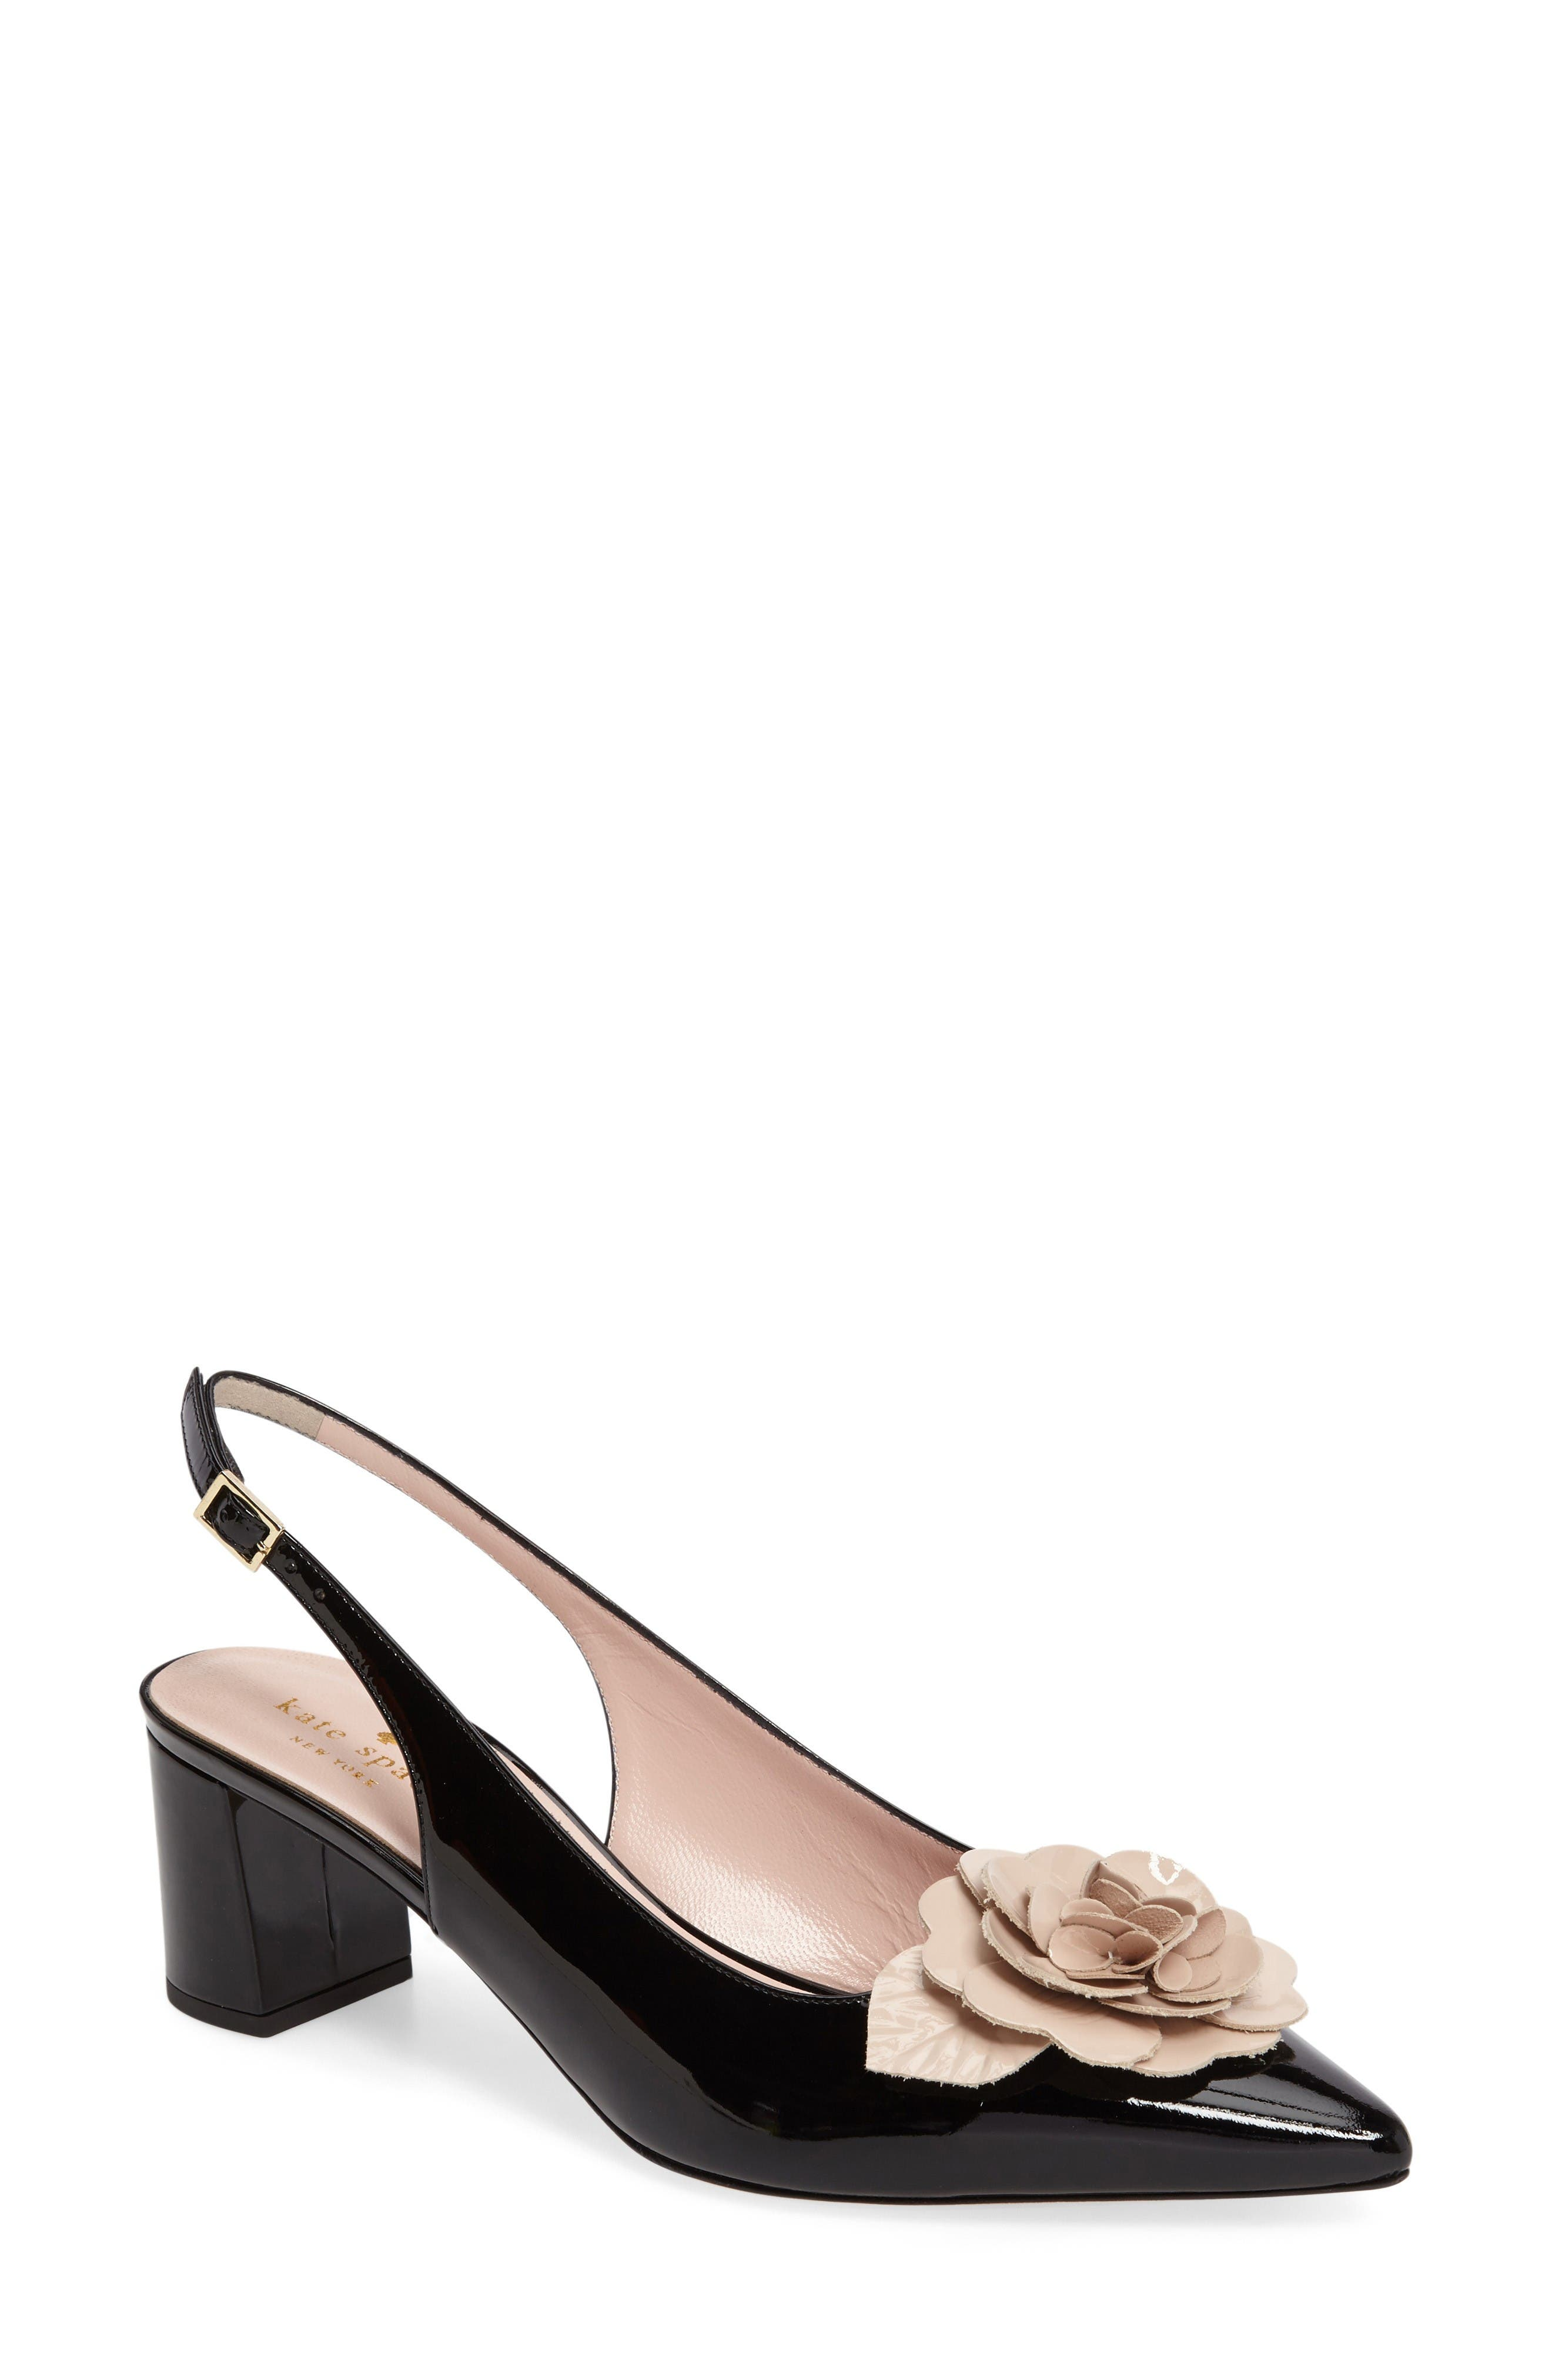 KATE SPADE NEW YORK mercer slingback pump